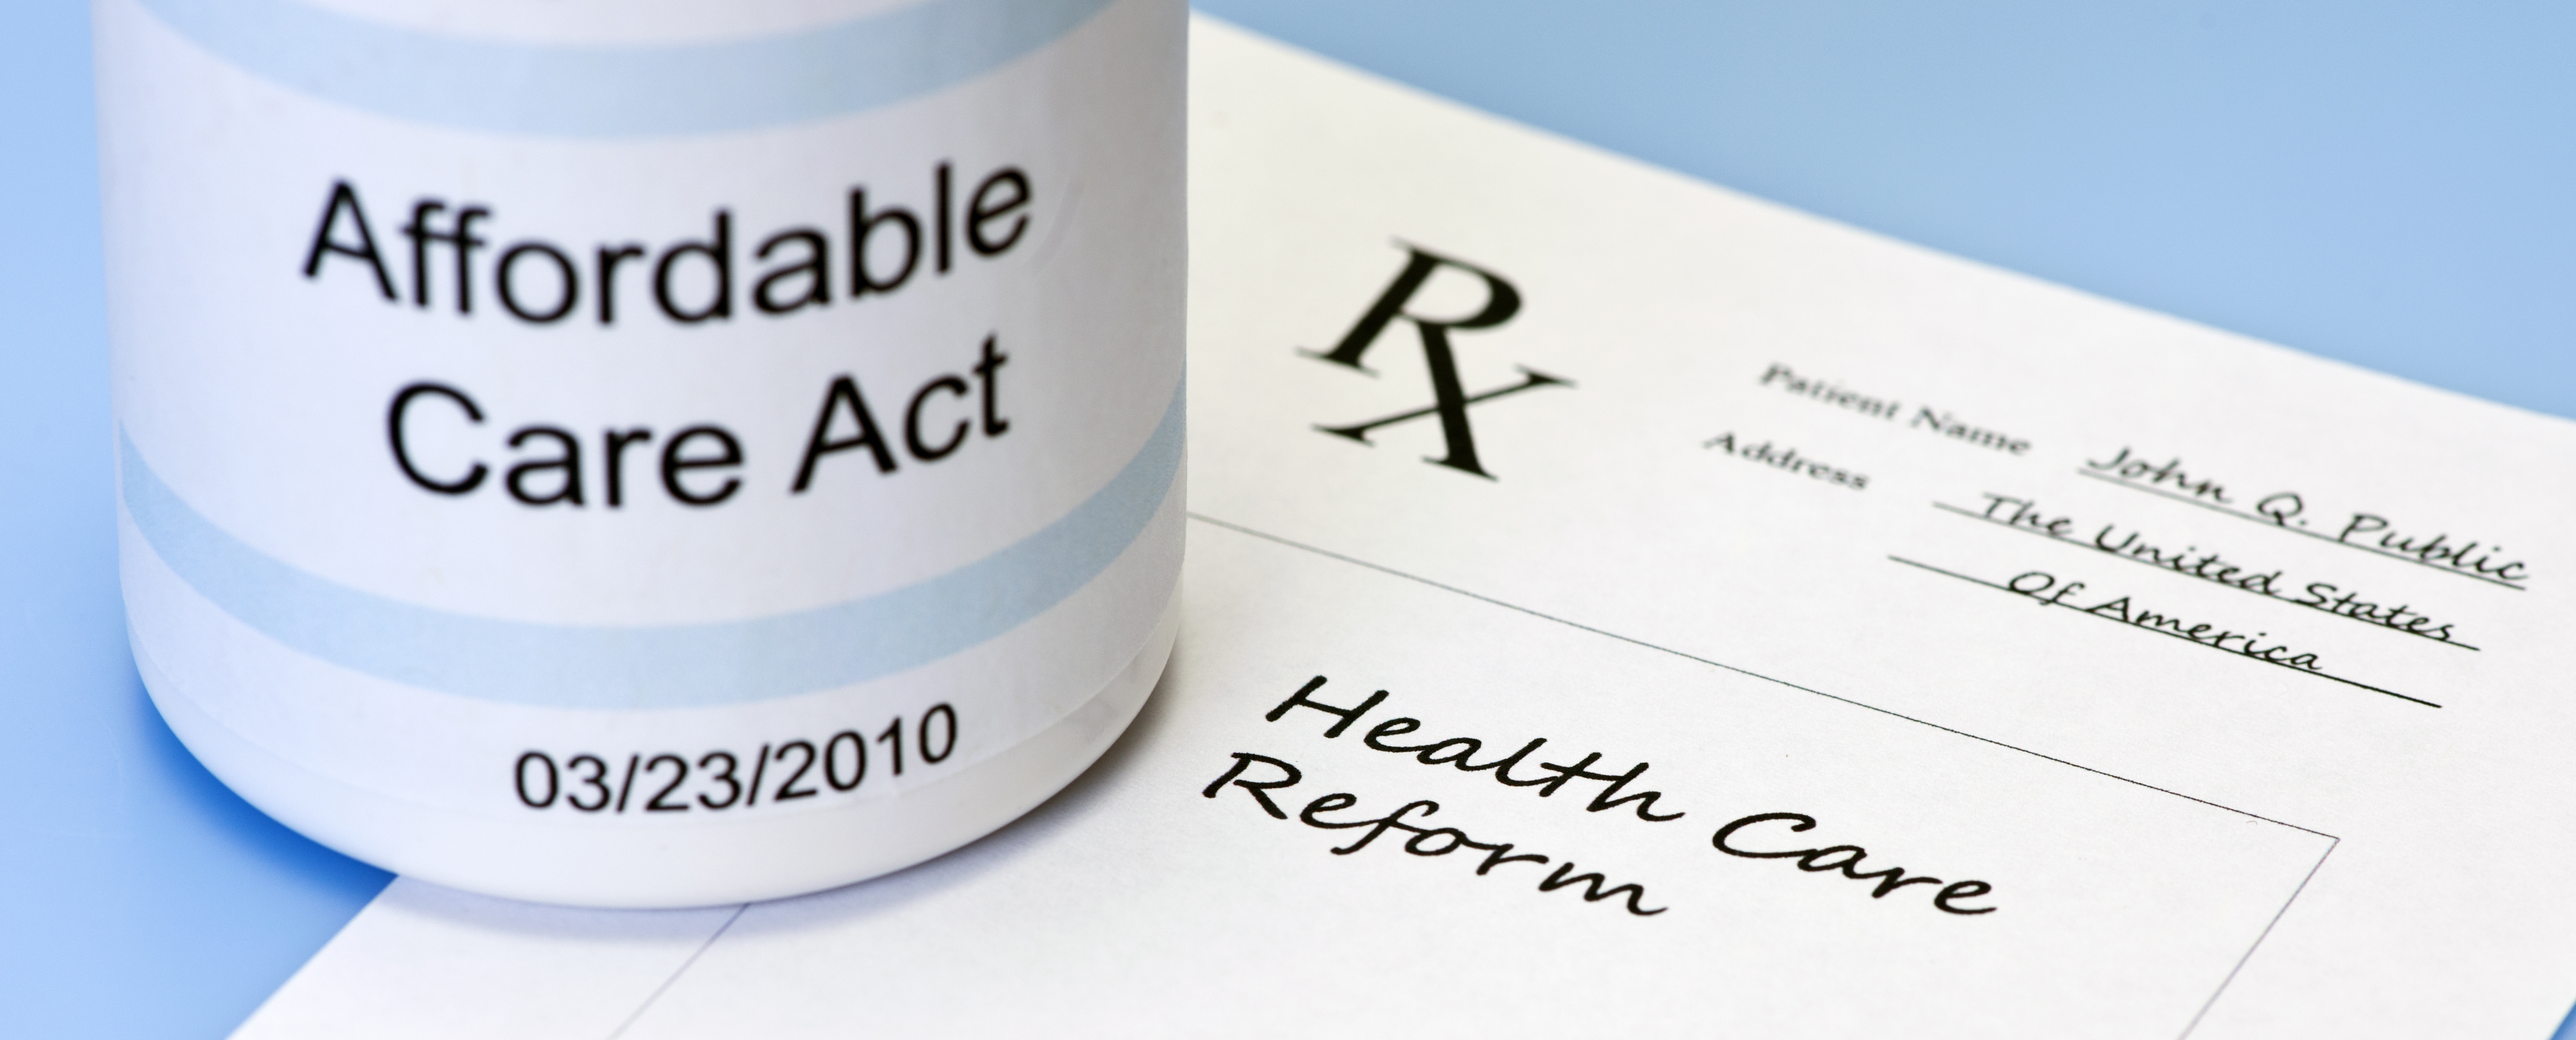 is the affordable care act How the affordable care act affected nursing date: april 27, 2016 prior to the passing of the affordable care act (aca), 486 million people across the us were left uninsured.